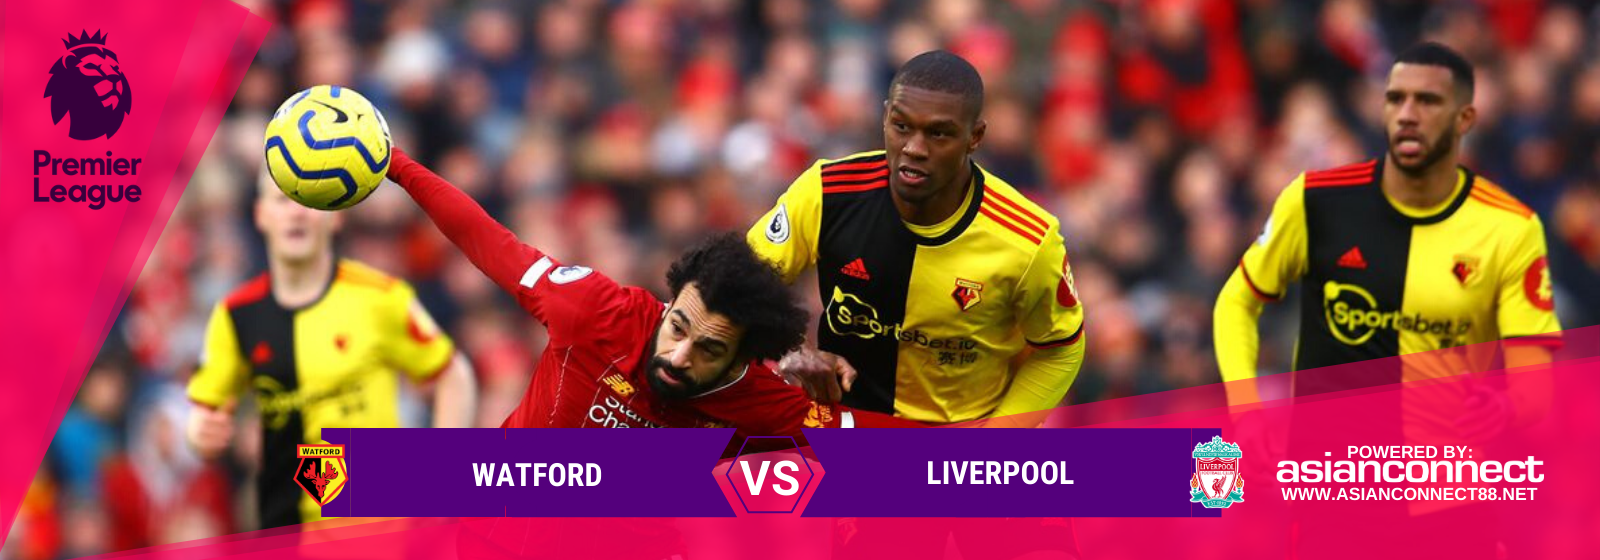 Asianconnect: Watford vs Liverpool Odds for February 29, 2020